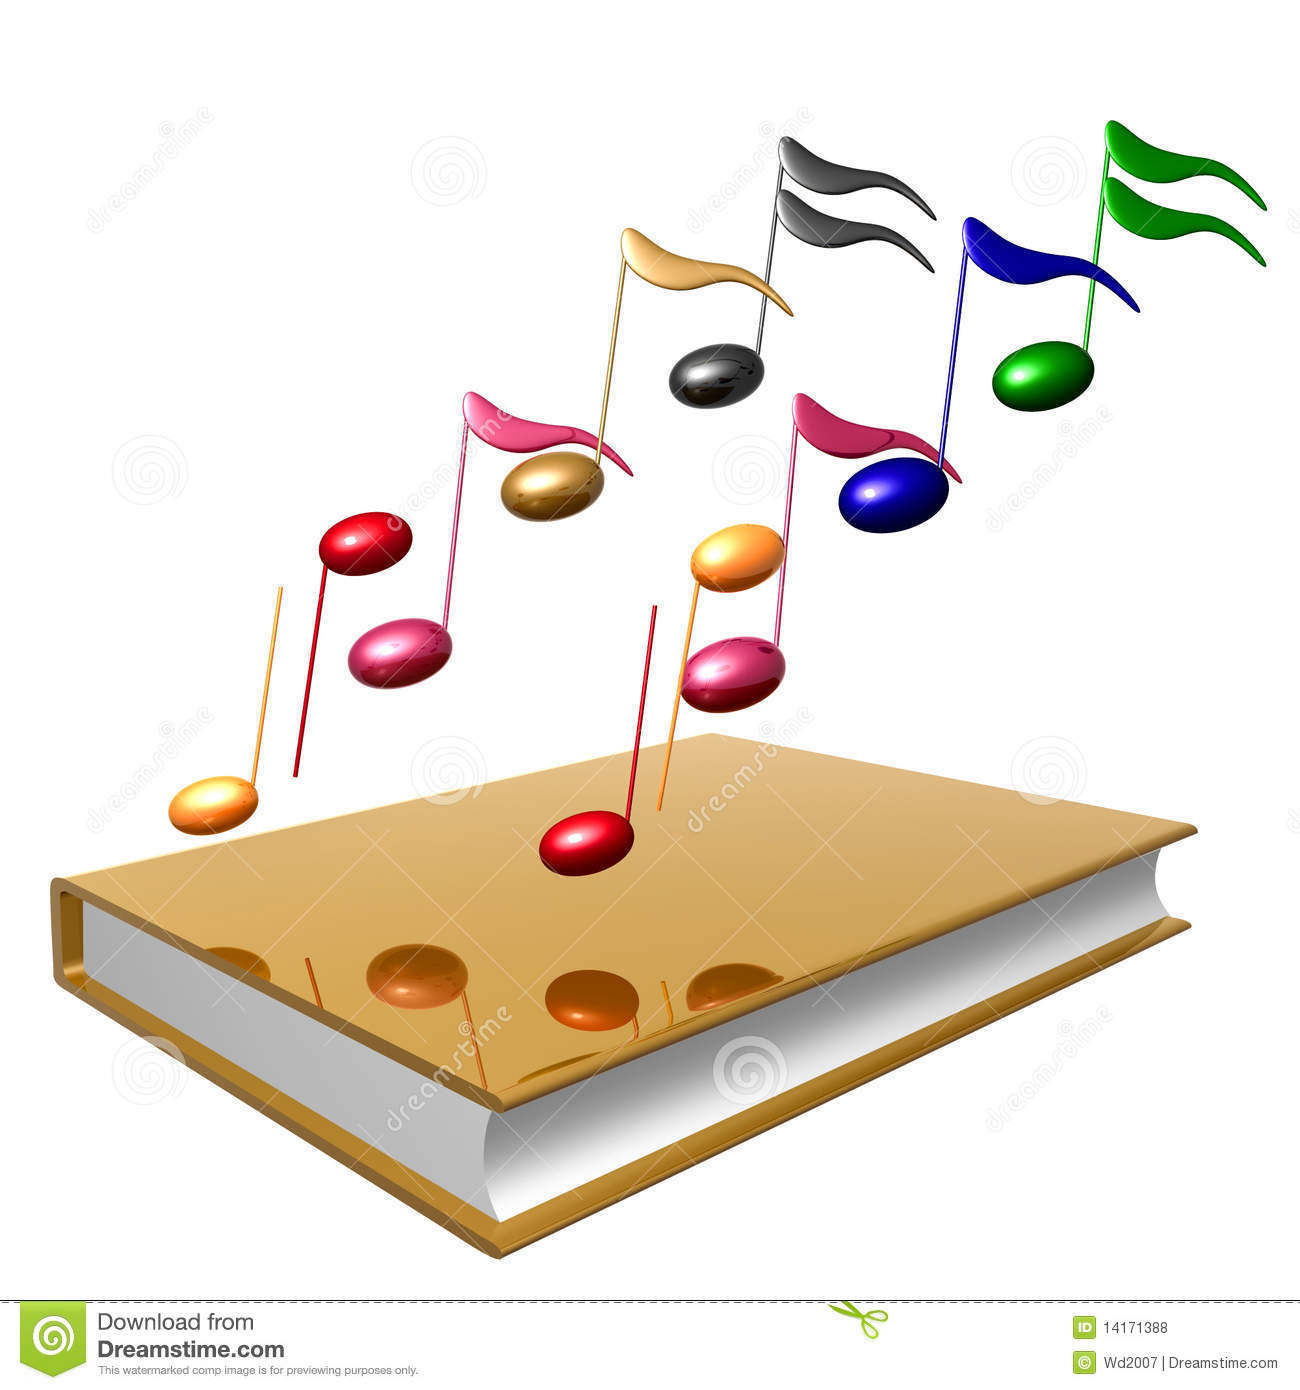 Golden Book And Colorful Music Notes Icon Royalty Free Stock Photos ...